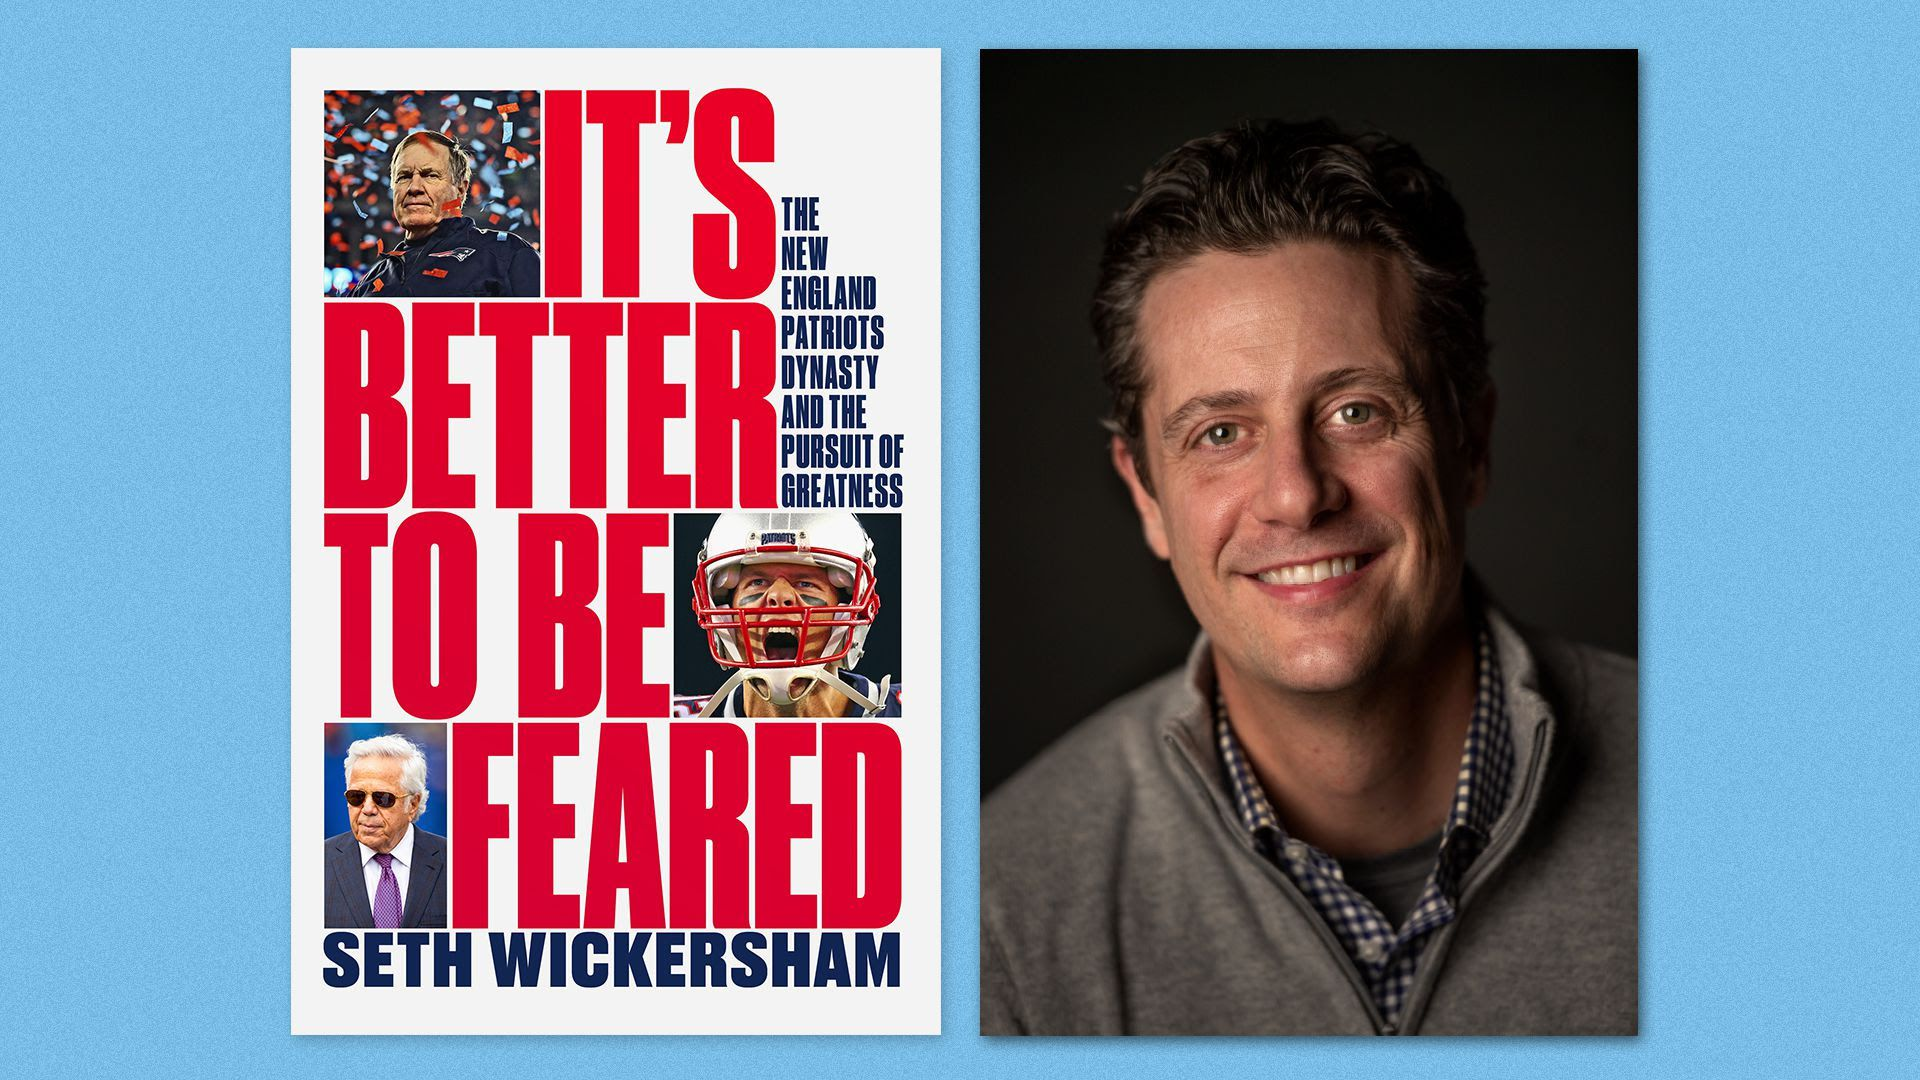 """A headshot of author Seth Wickersham next to his book, """"It's Better to be Feared: The New England Patriots Dynasty and the Pursuit of Greatness."""""""